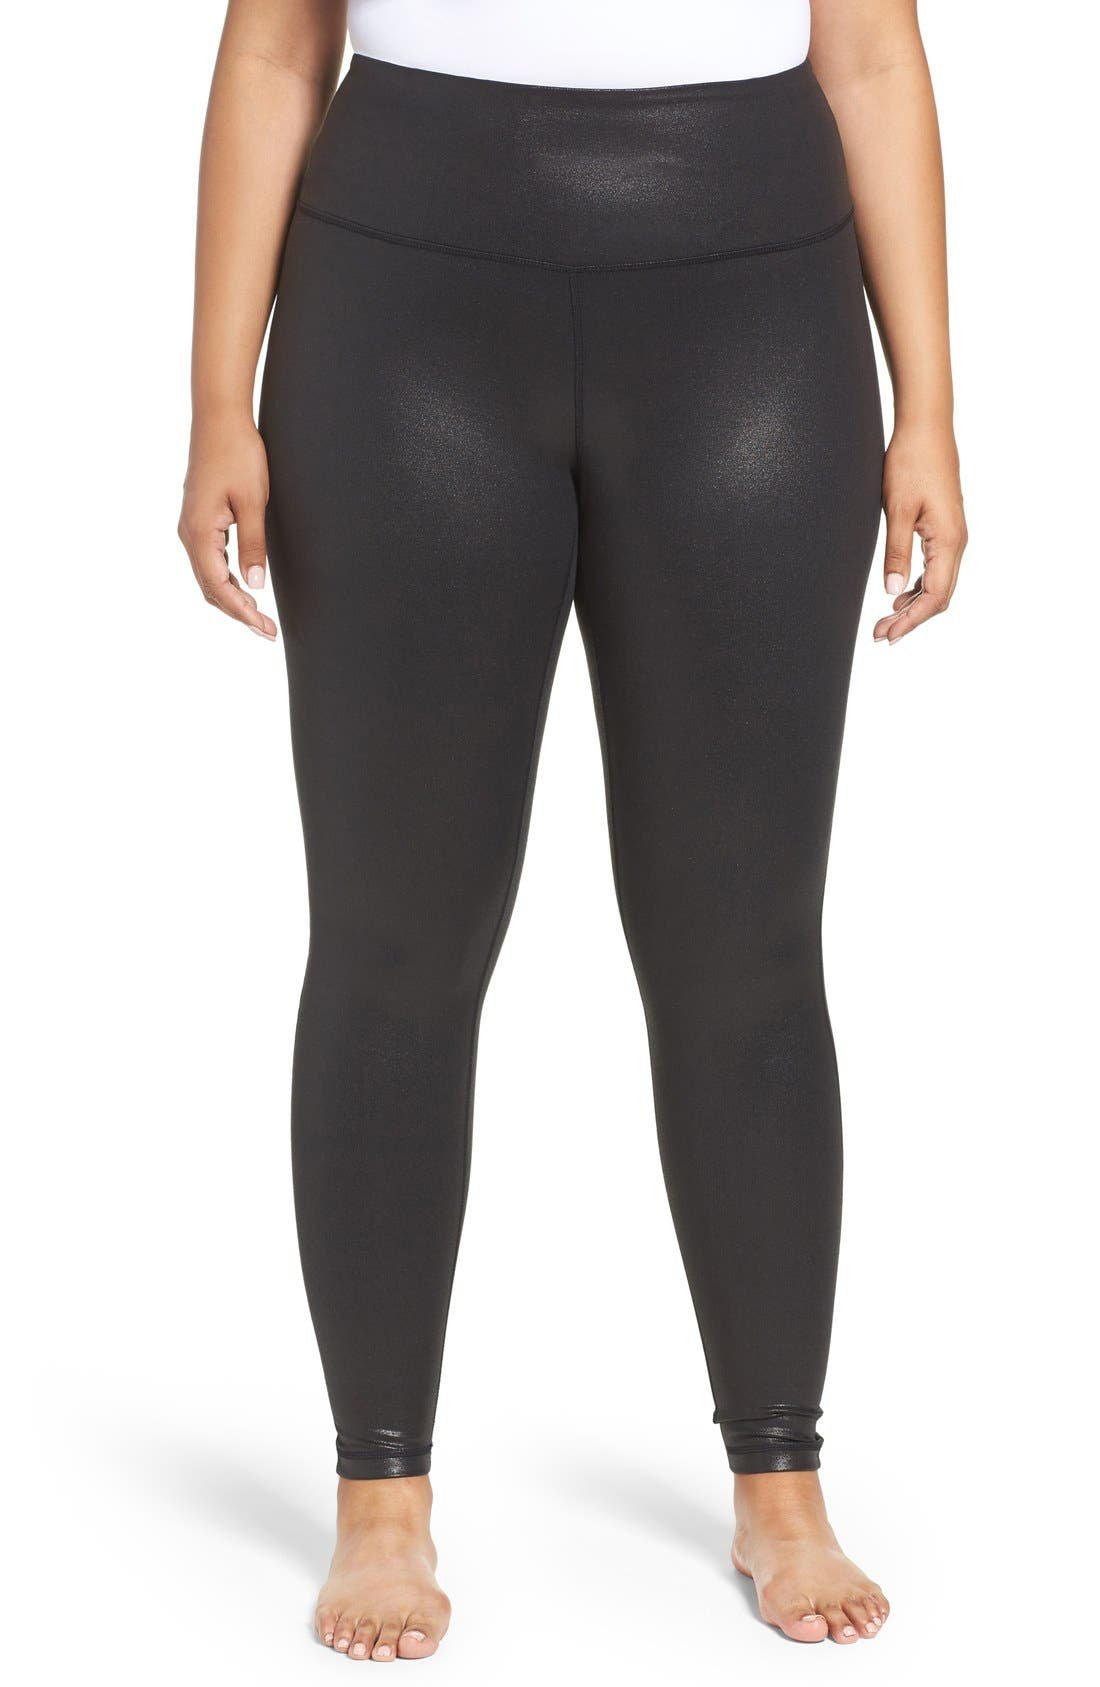 Main Image - Zella Live-In High Waist Leggings (Plus Size)